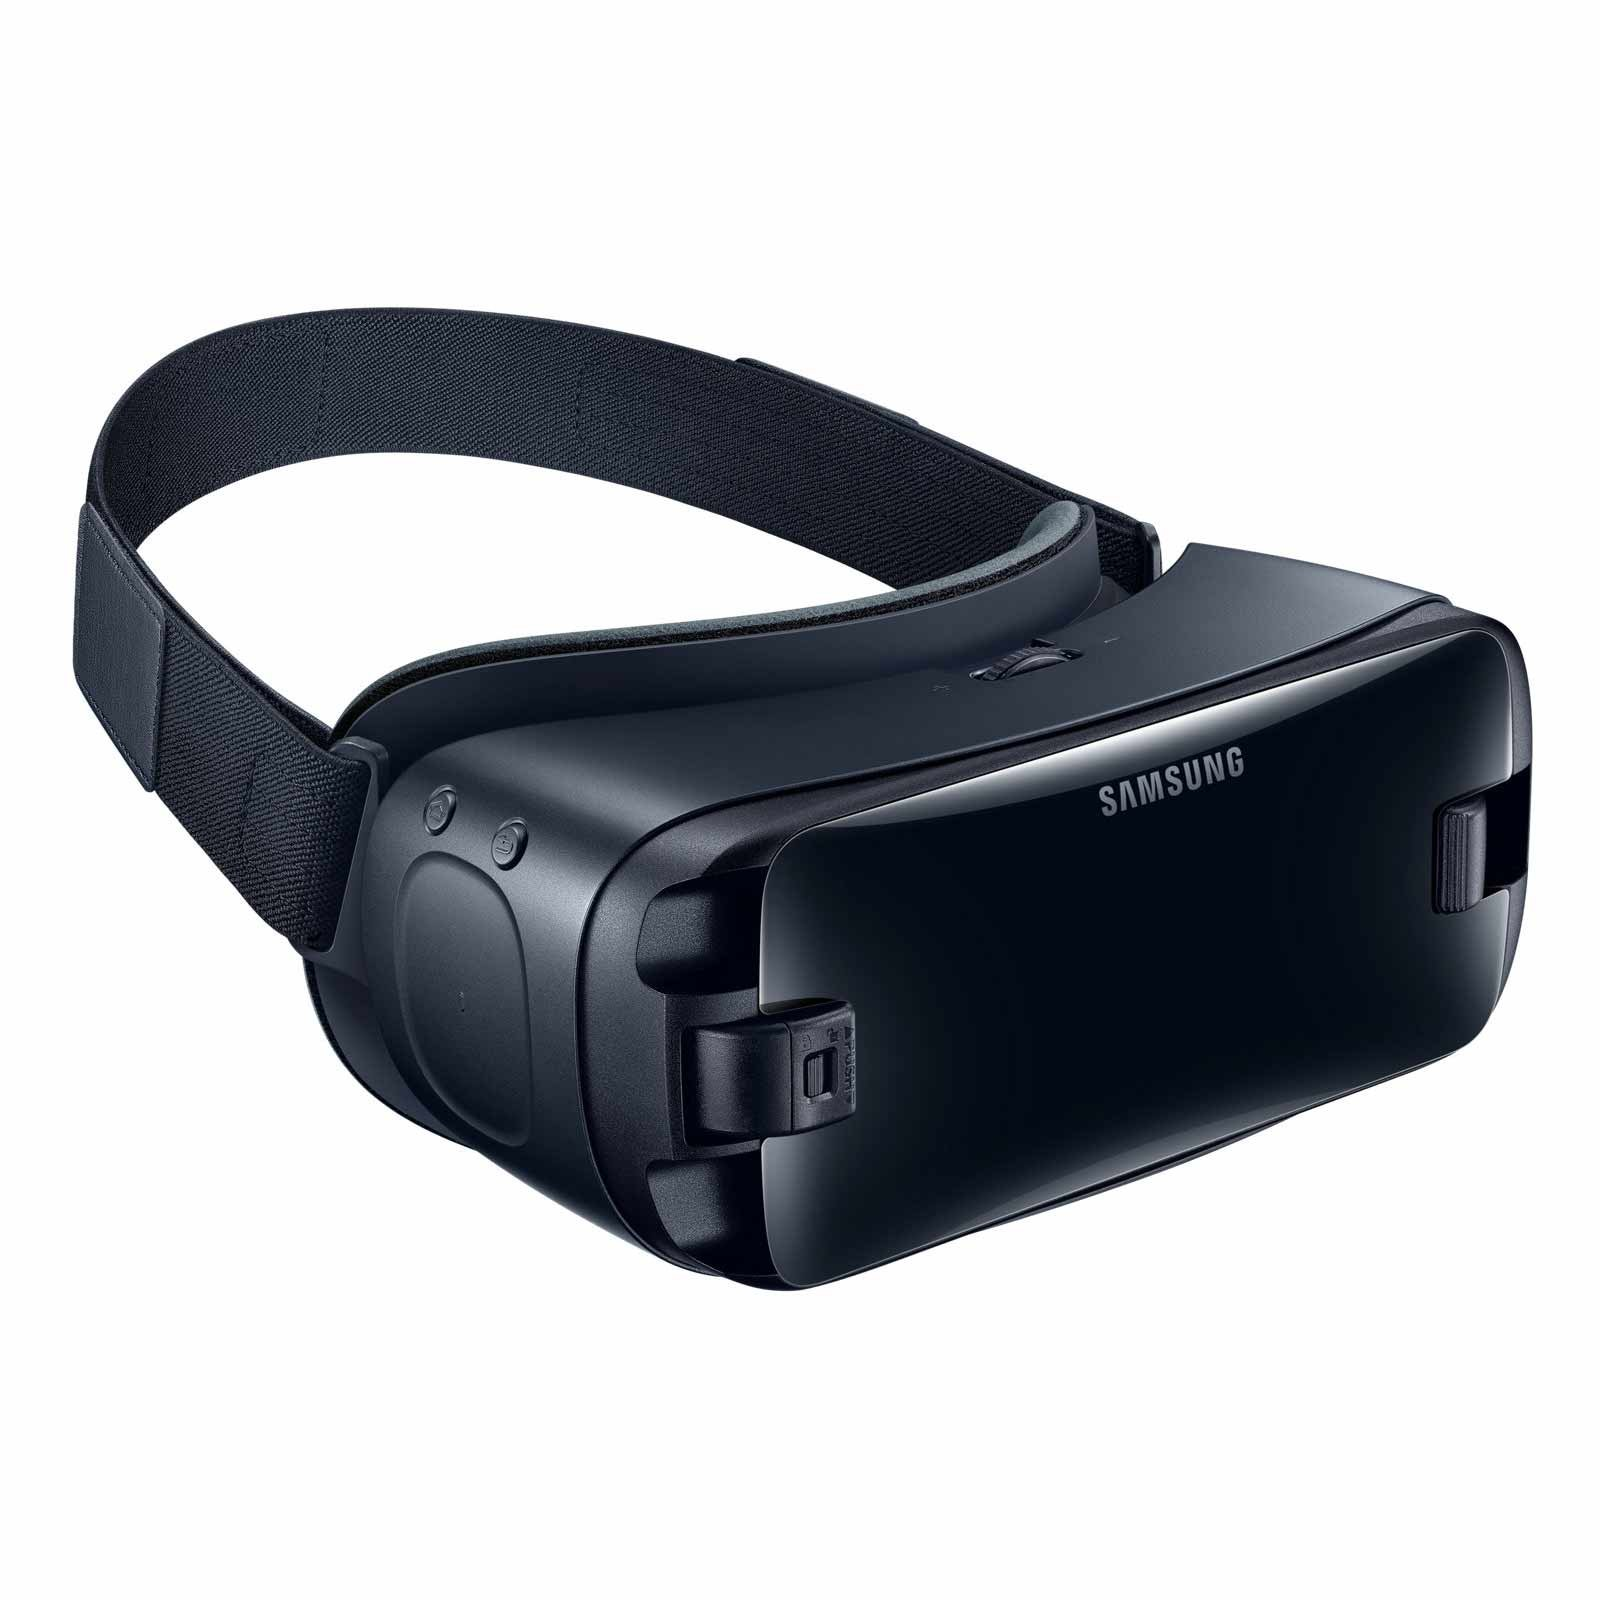 Samsung Gear VR (2017 Edition) with Controller Virtual Reality Headset SM-R325 for Galaxy S8, S8+, S7, S7 edge, Note5, Note 8, S6 edge+, S6, S6 edge (International Version, No Warranty) by Samsung (Image #7)